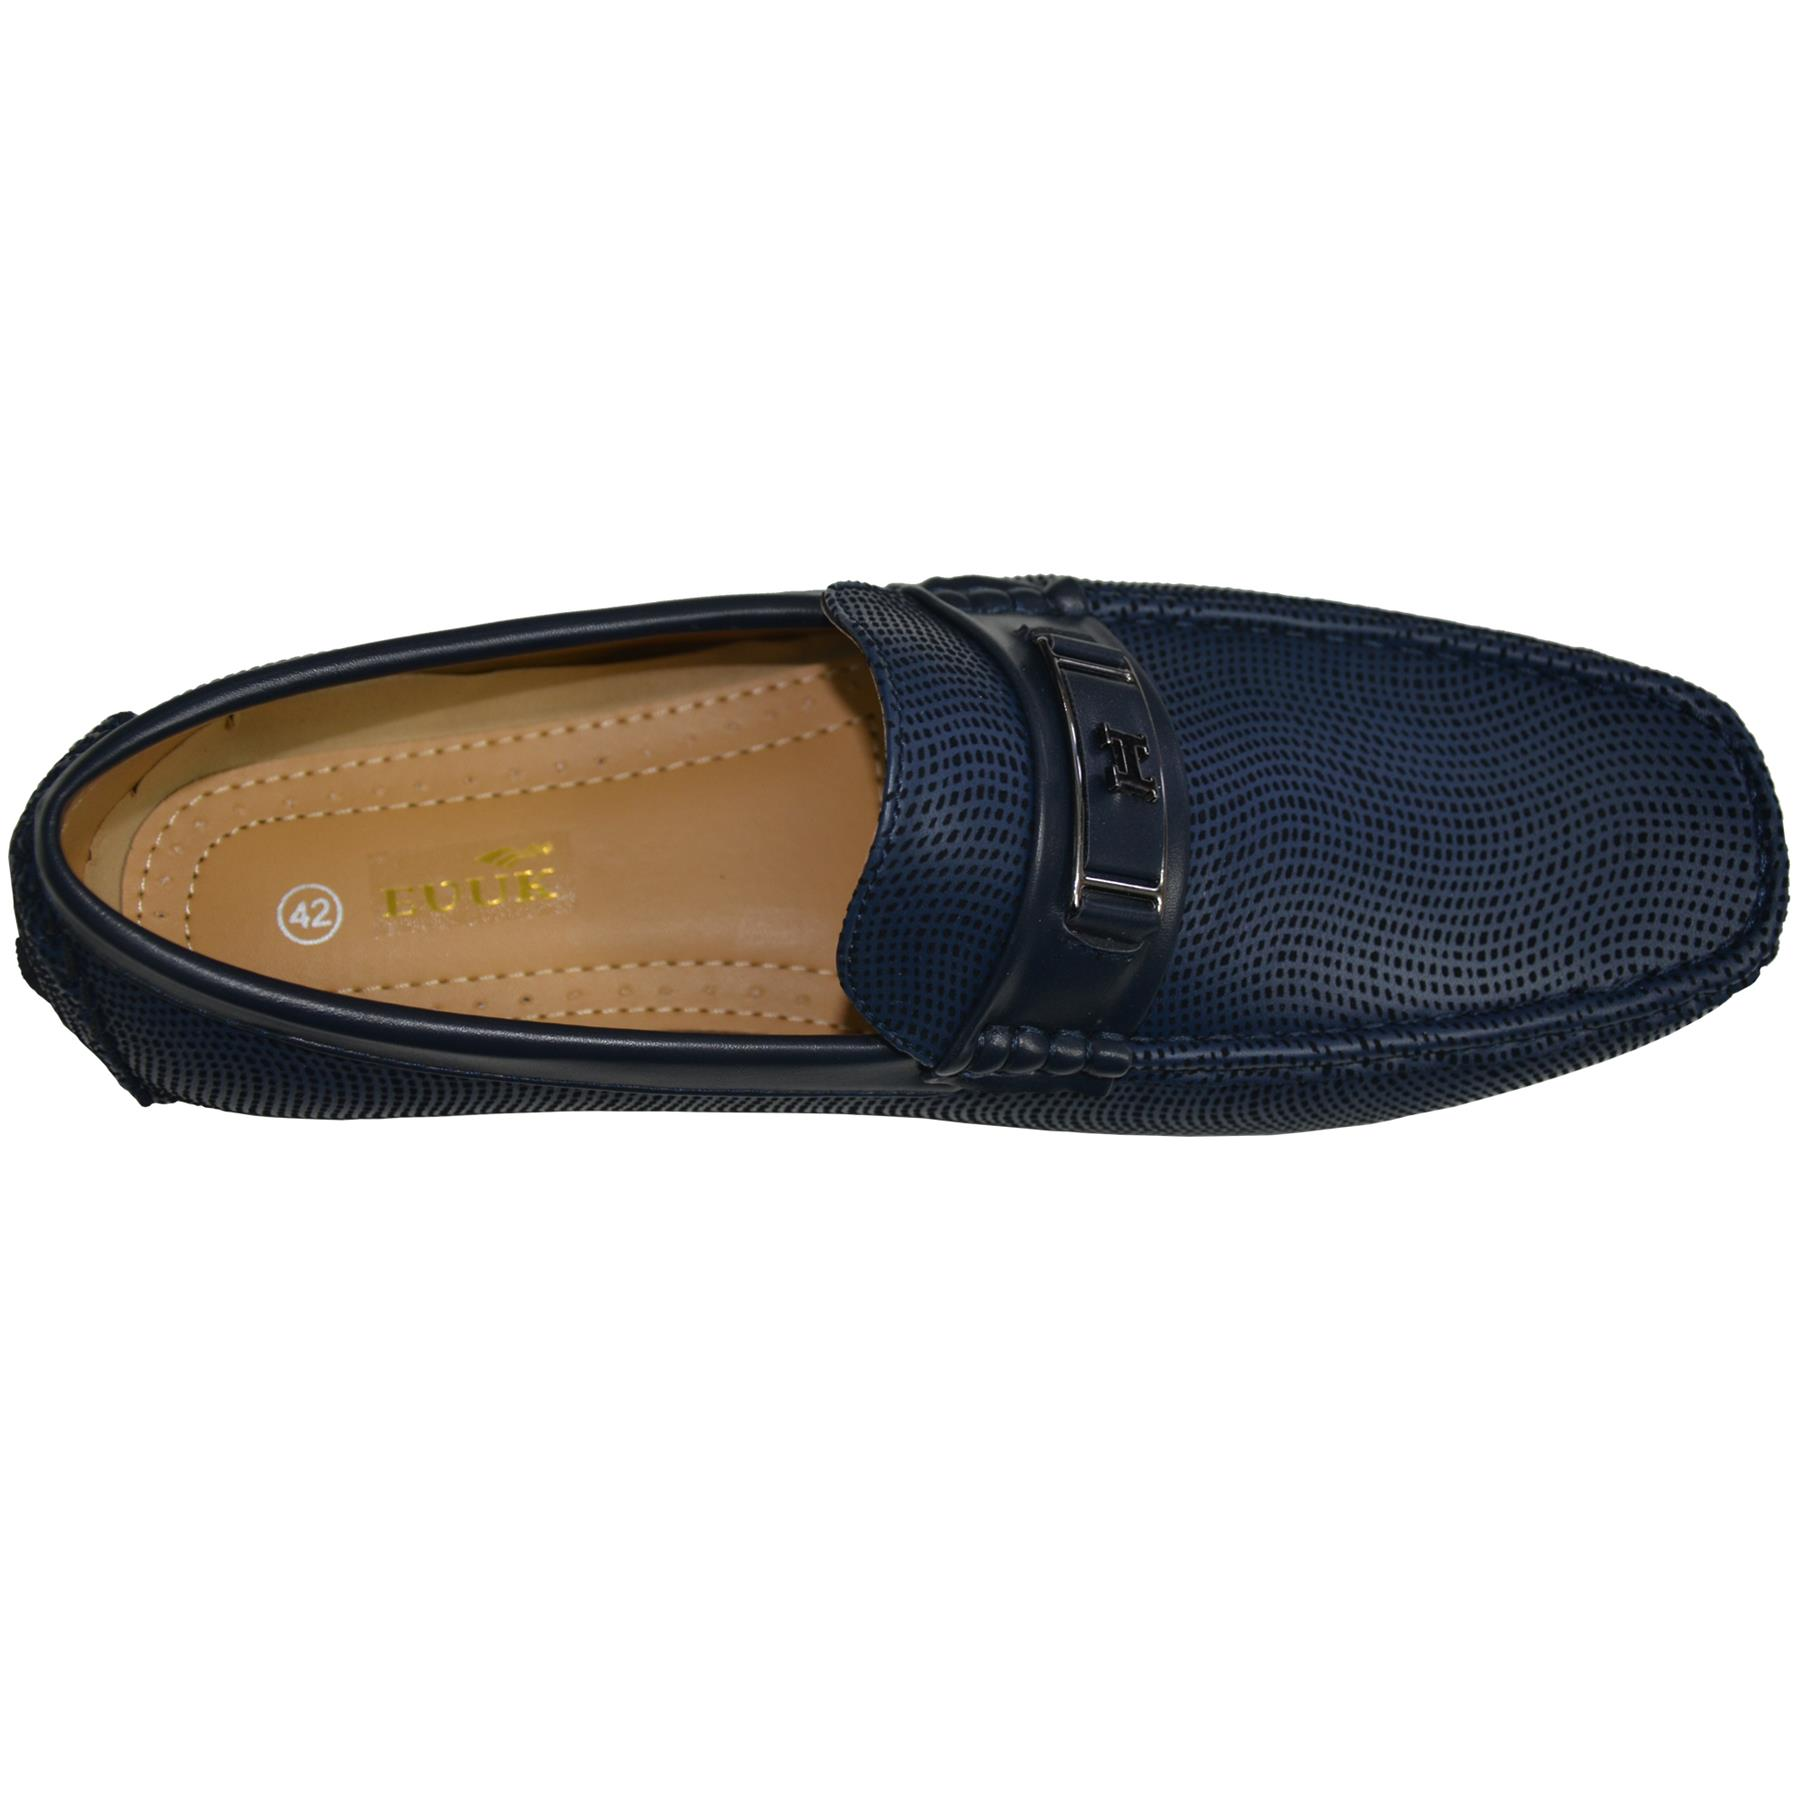 Mens-Slip-Ons-Shoes-Boat-Deck-Driving-Smart-Buckle-Moccasins-Suede-Look-Loafers thumbnail 12